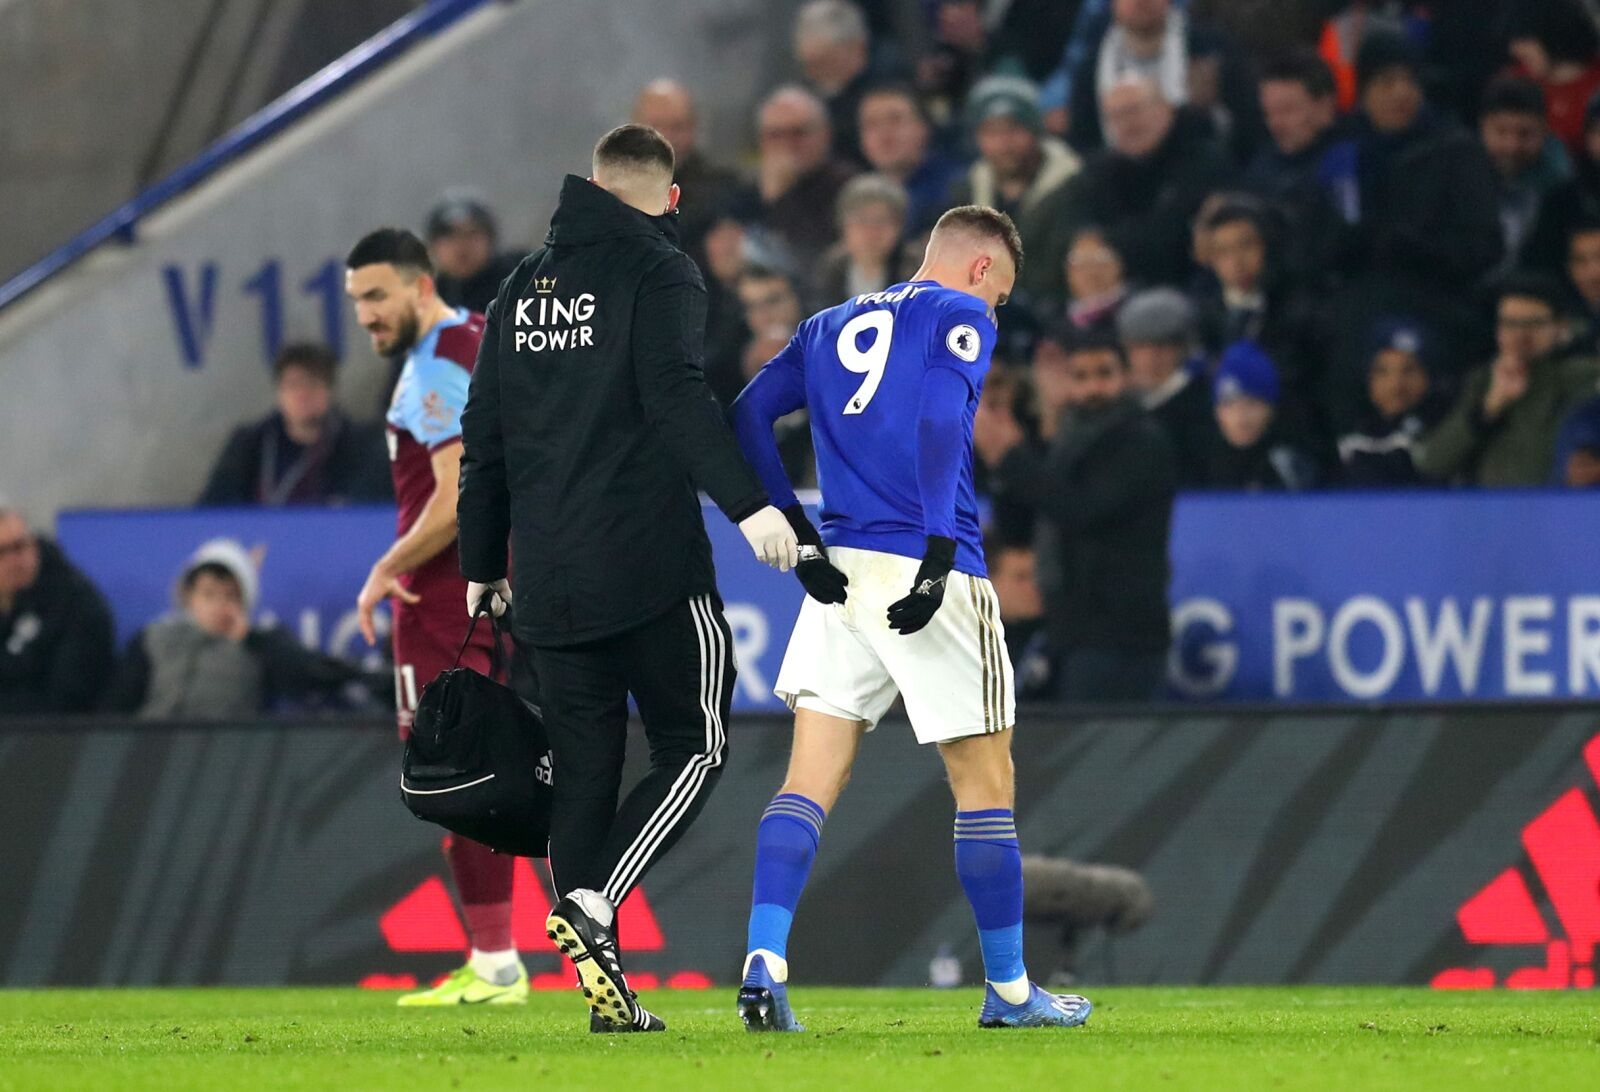 Good news on Jamie Vardy's injury, could play in vital Leicester game